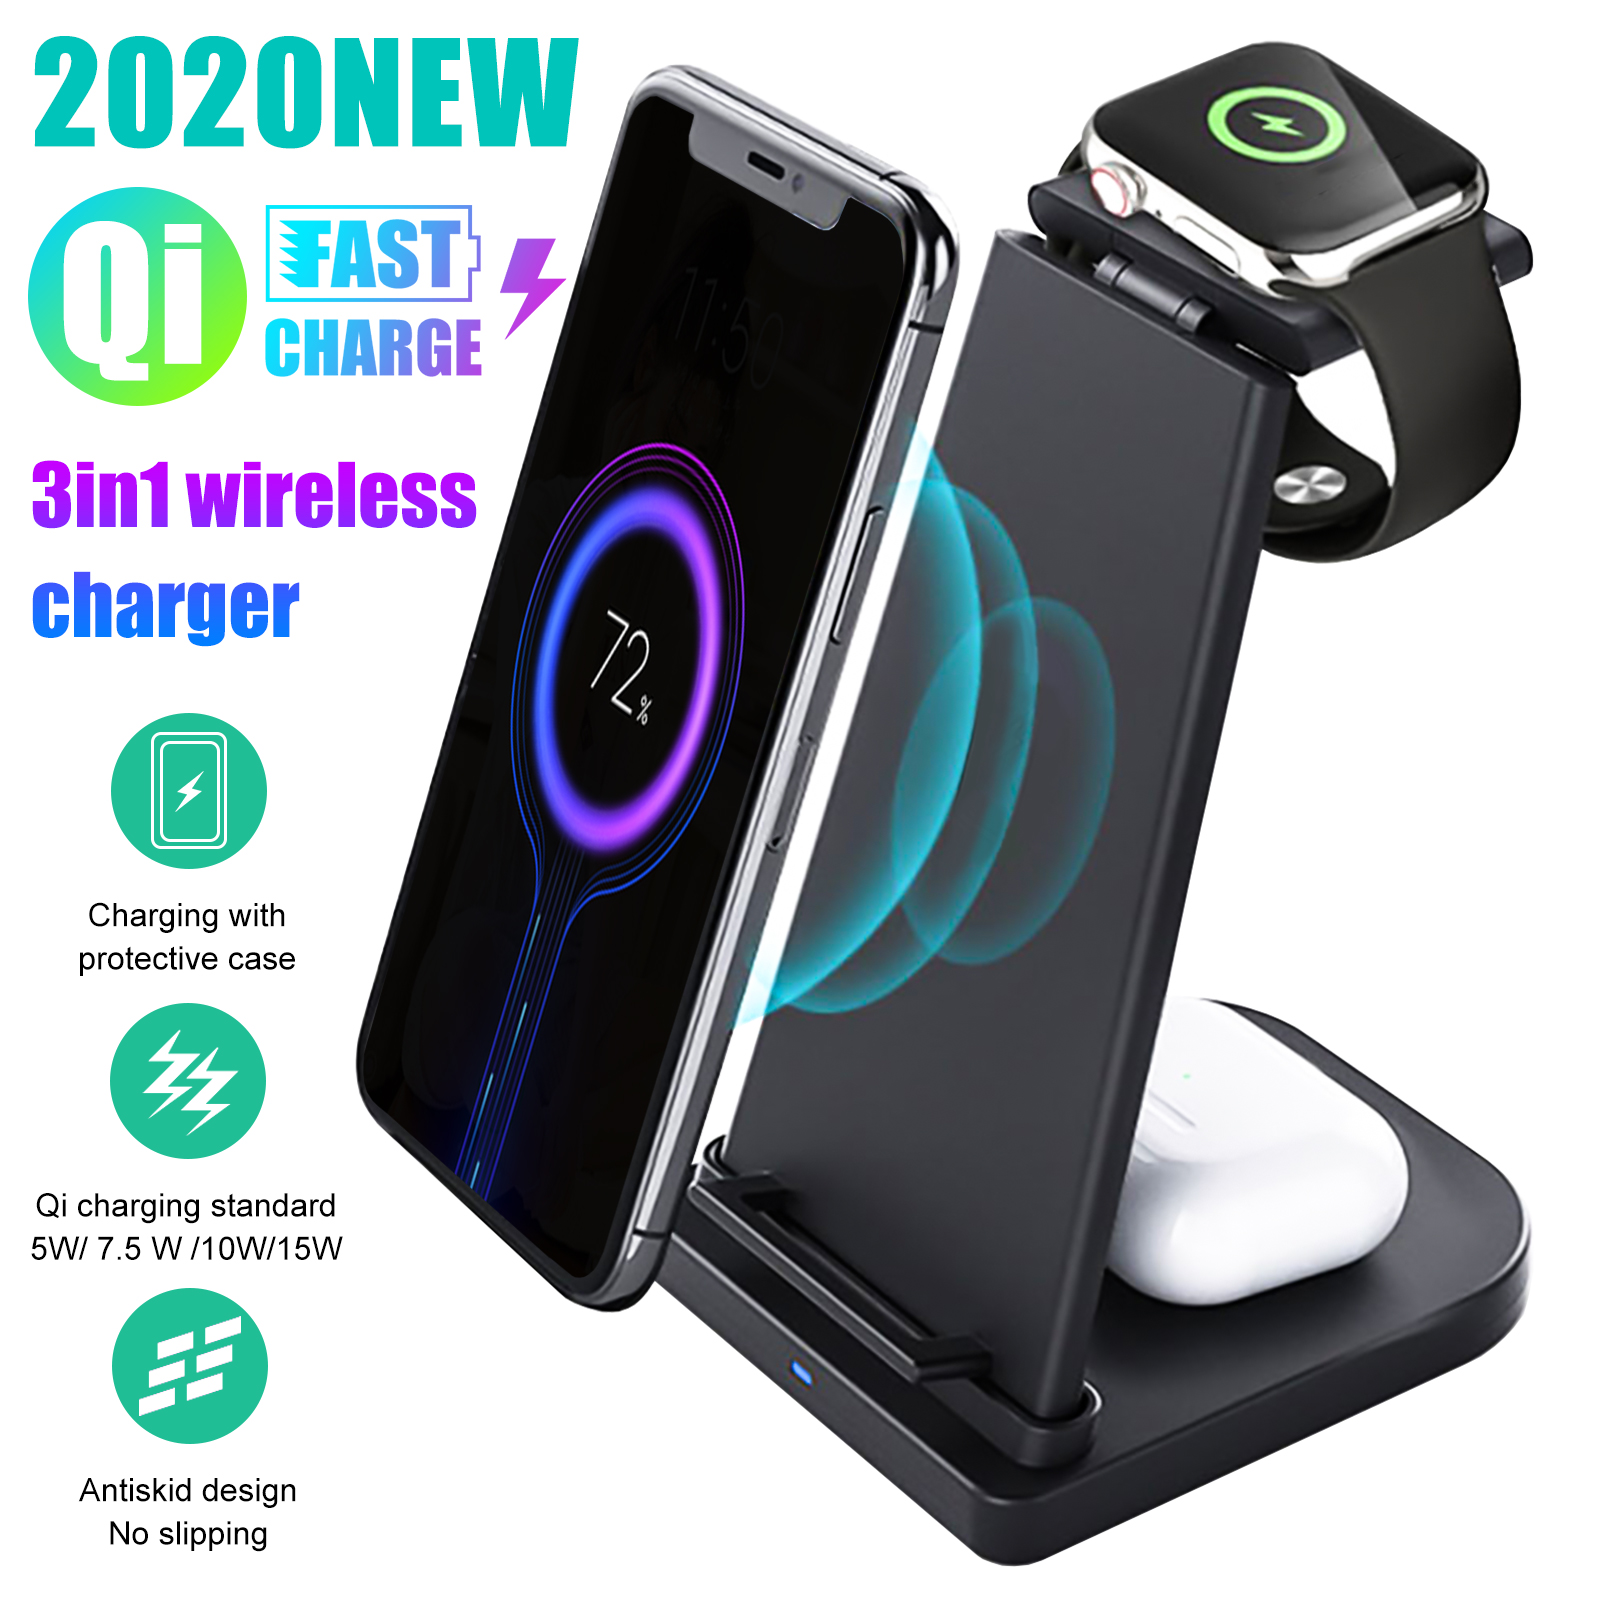 3in1 Wireless Fast Charging Dock Station Charger Stand For A